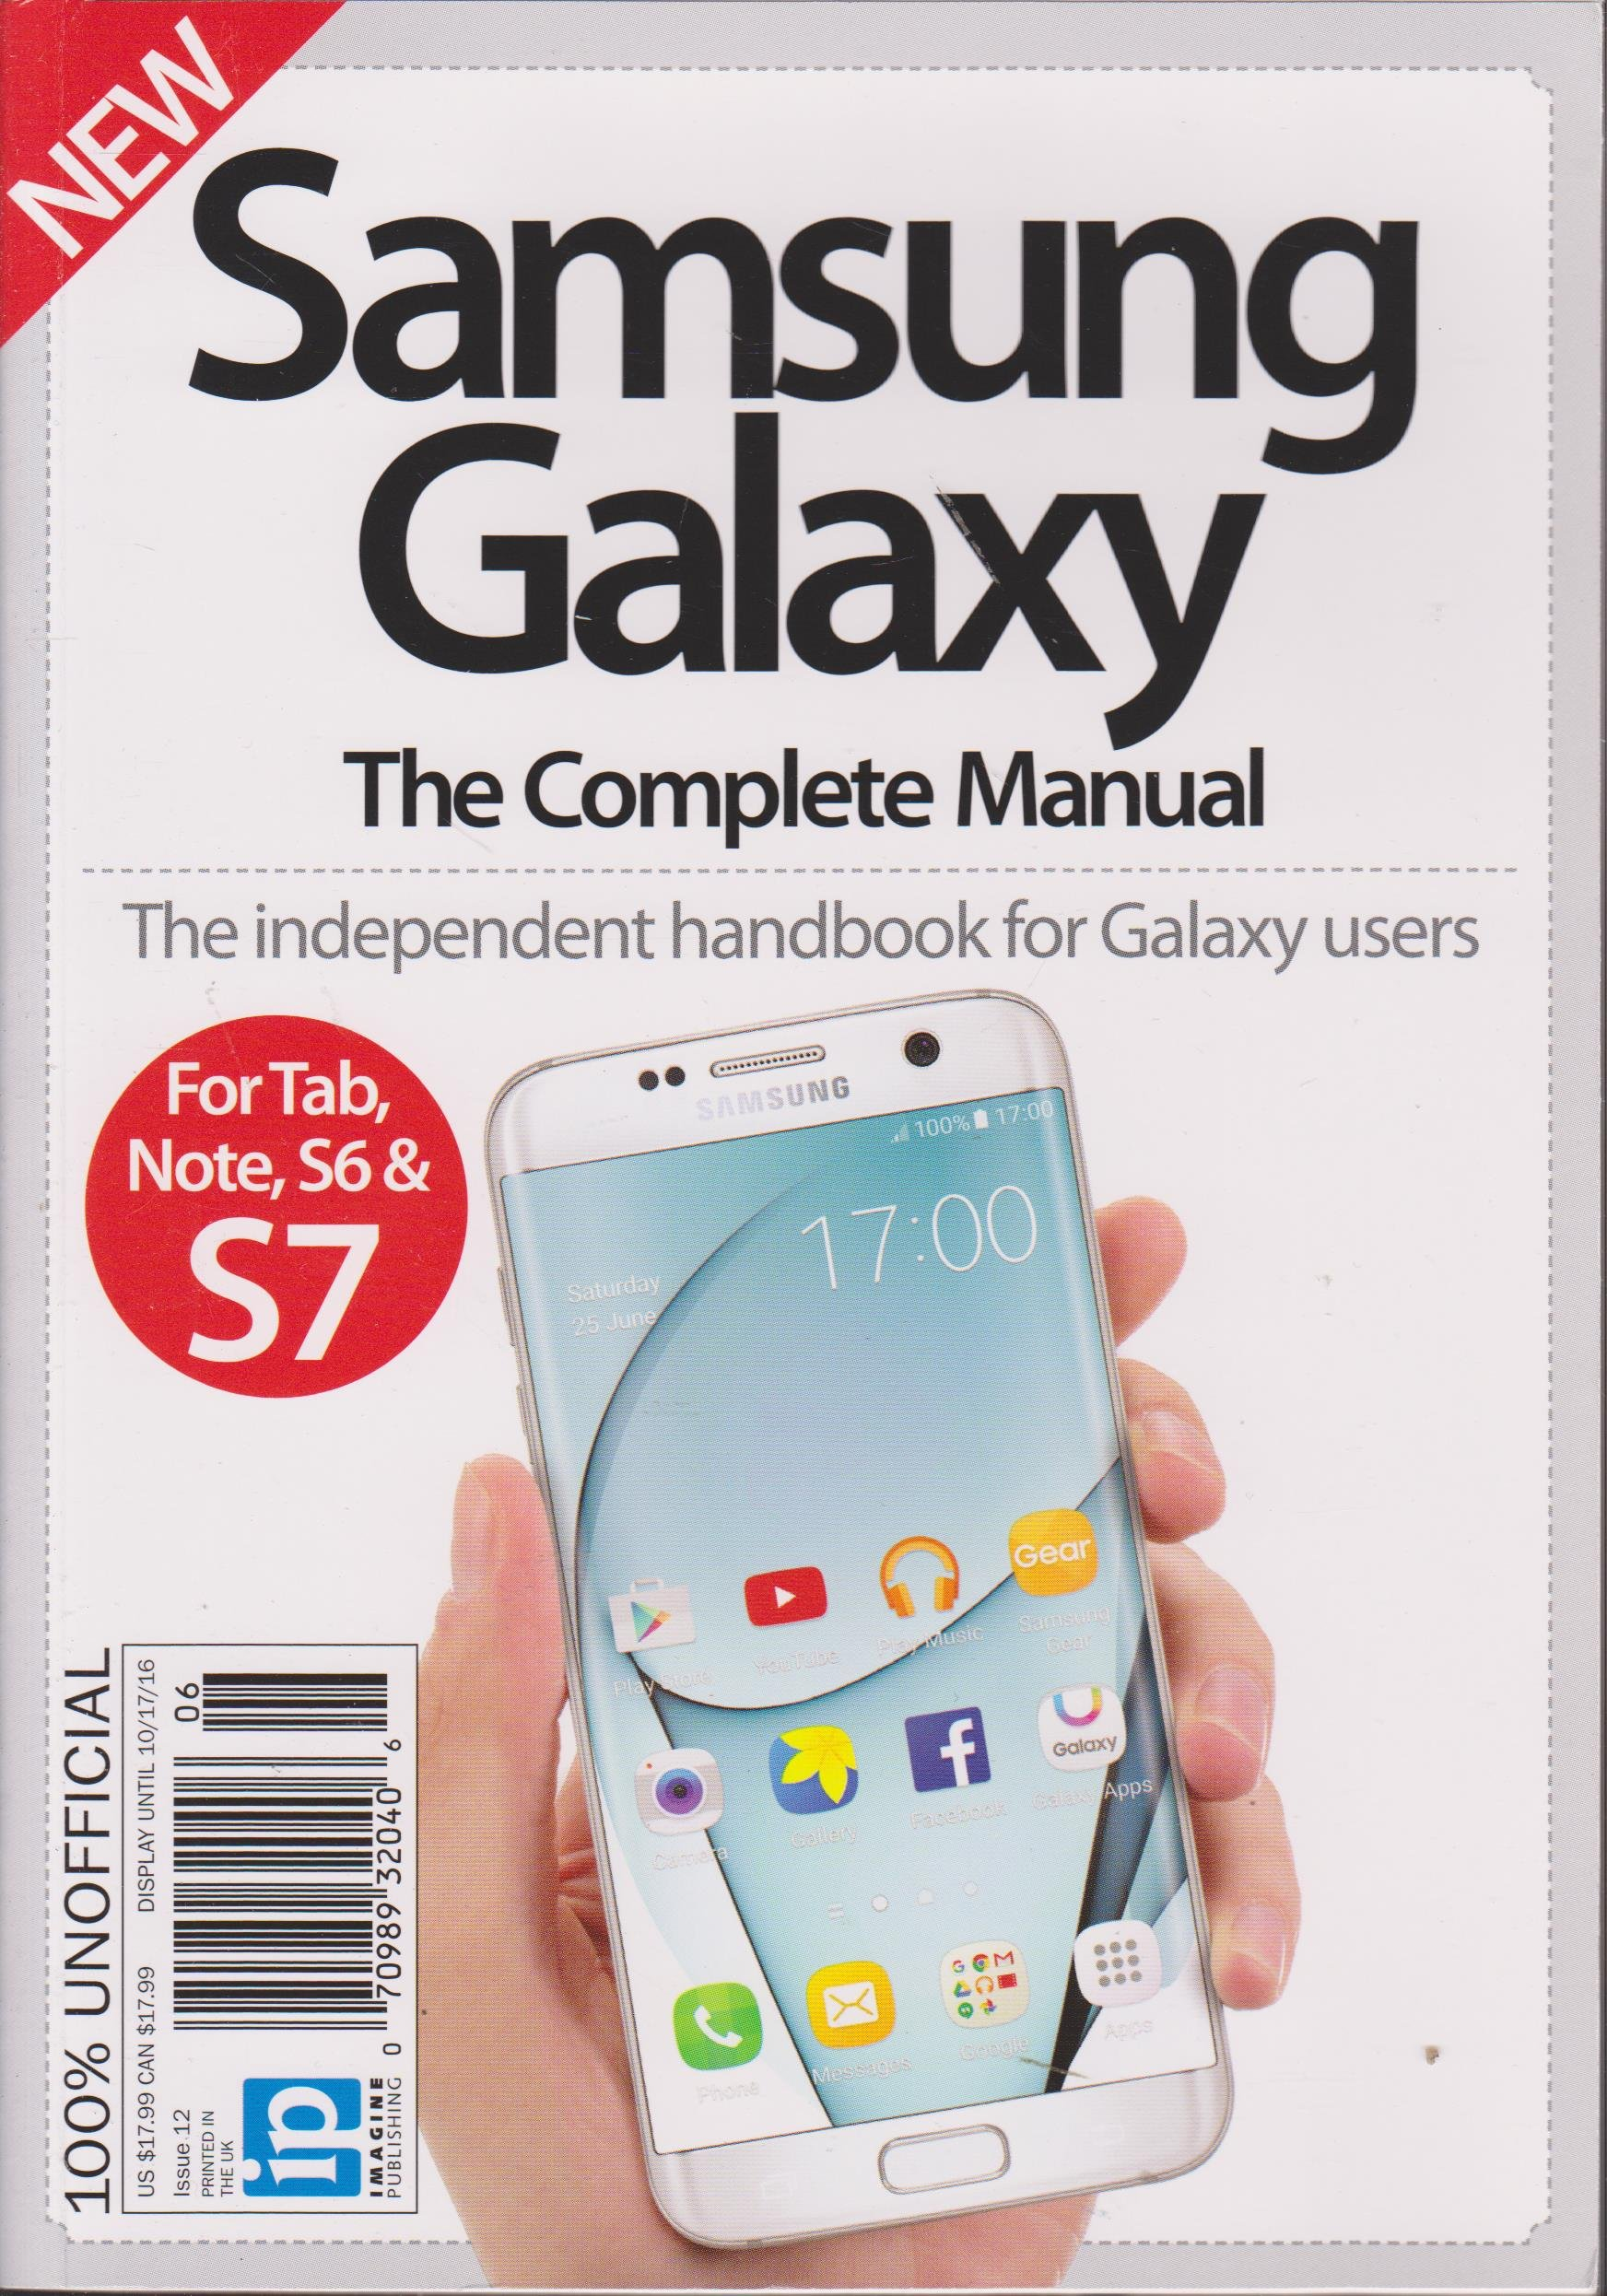 Samsung Galaxy The Complete Manual Issue 12 ebook